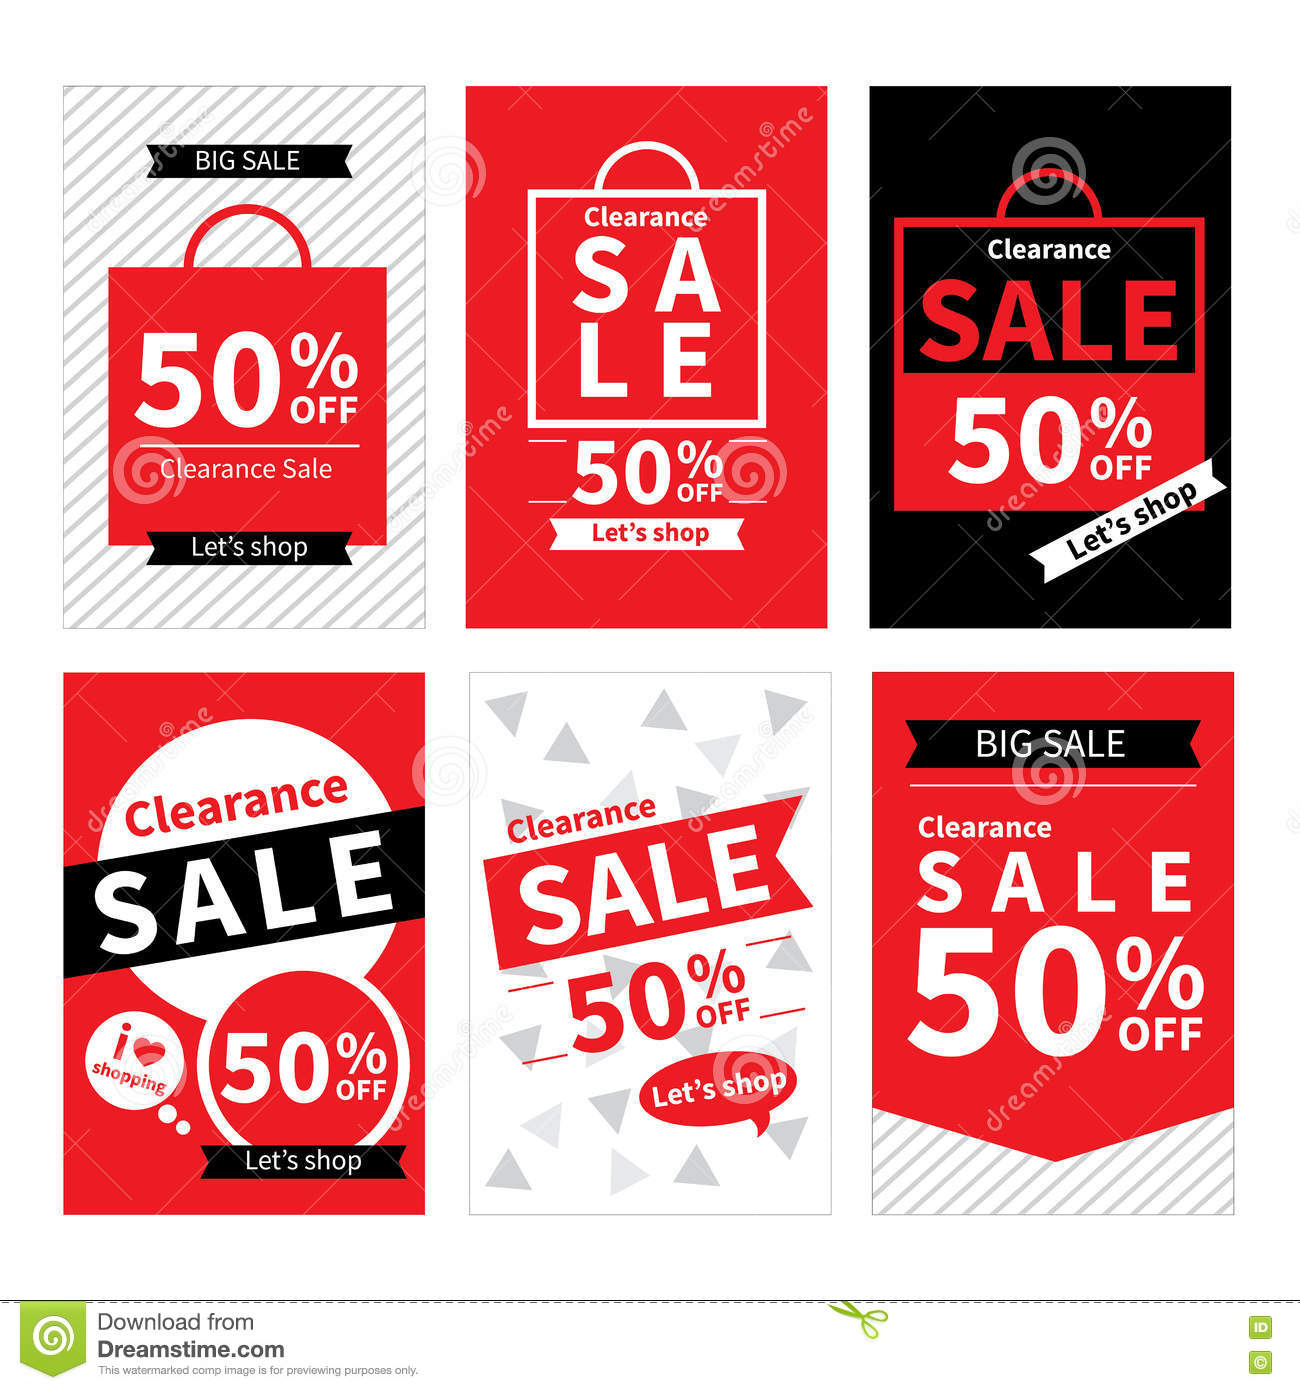 Sale Promotion Templates Royalty Free Stock Photos - Image: 35036628